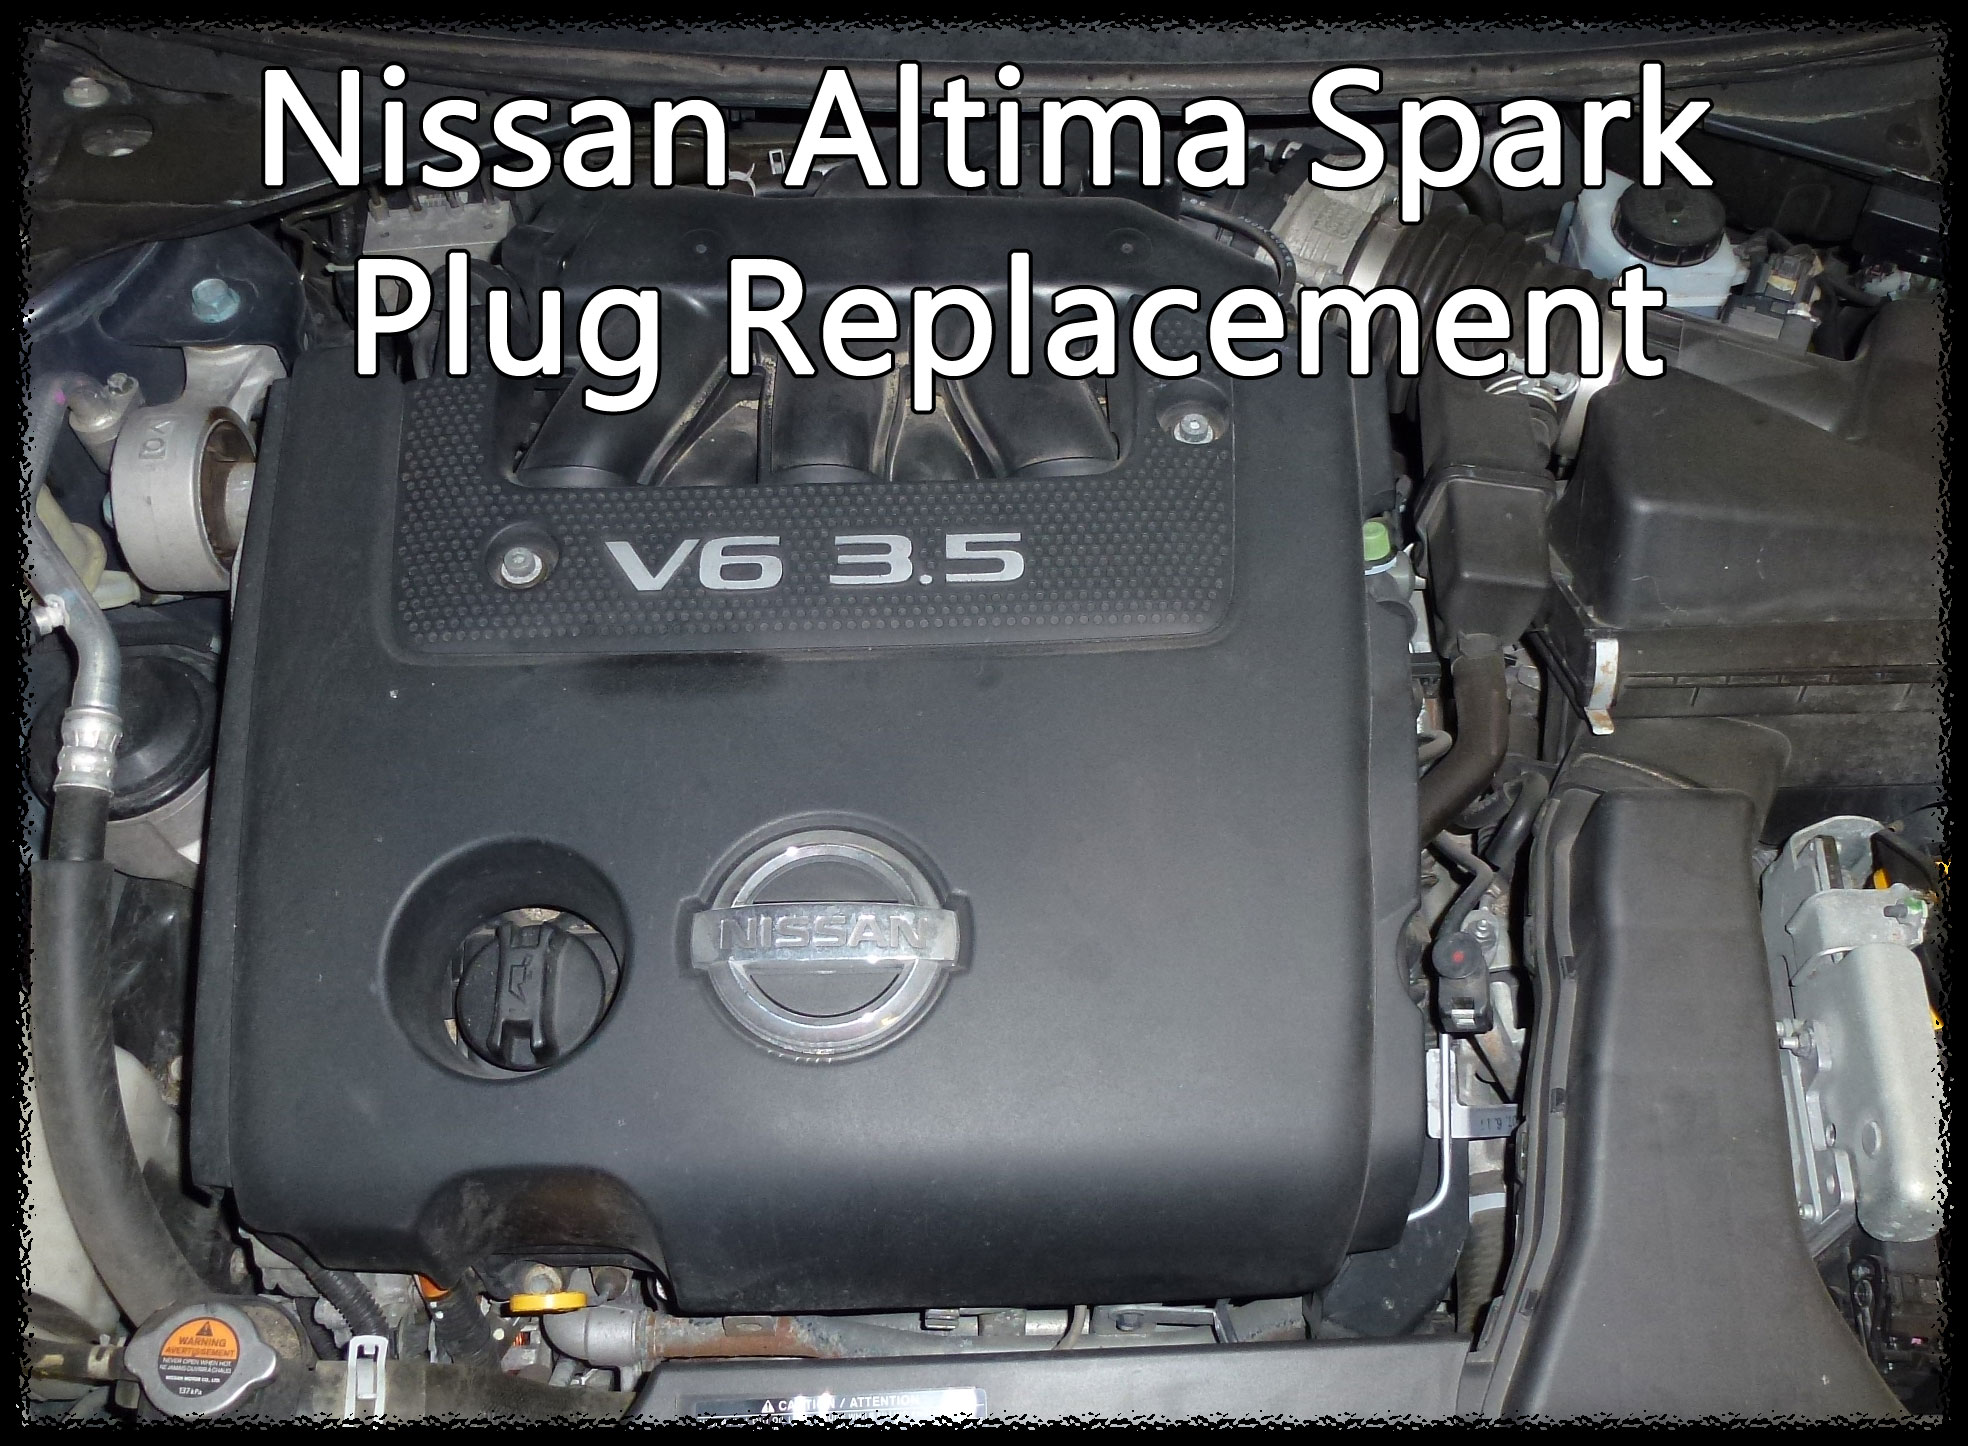 Auto Nissan Electrical Plugs